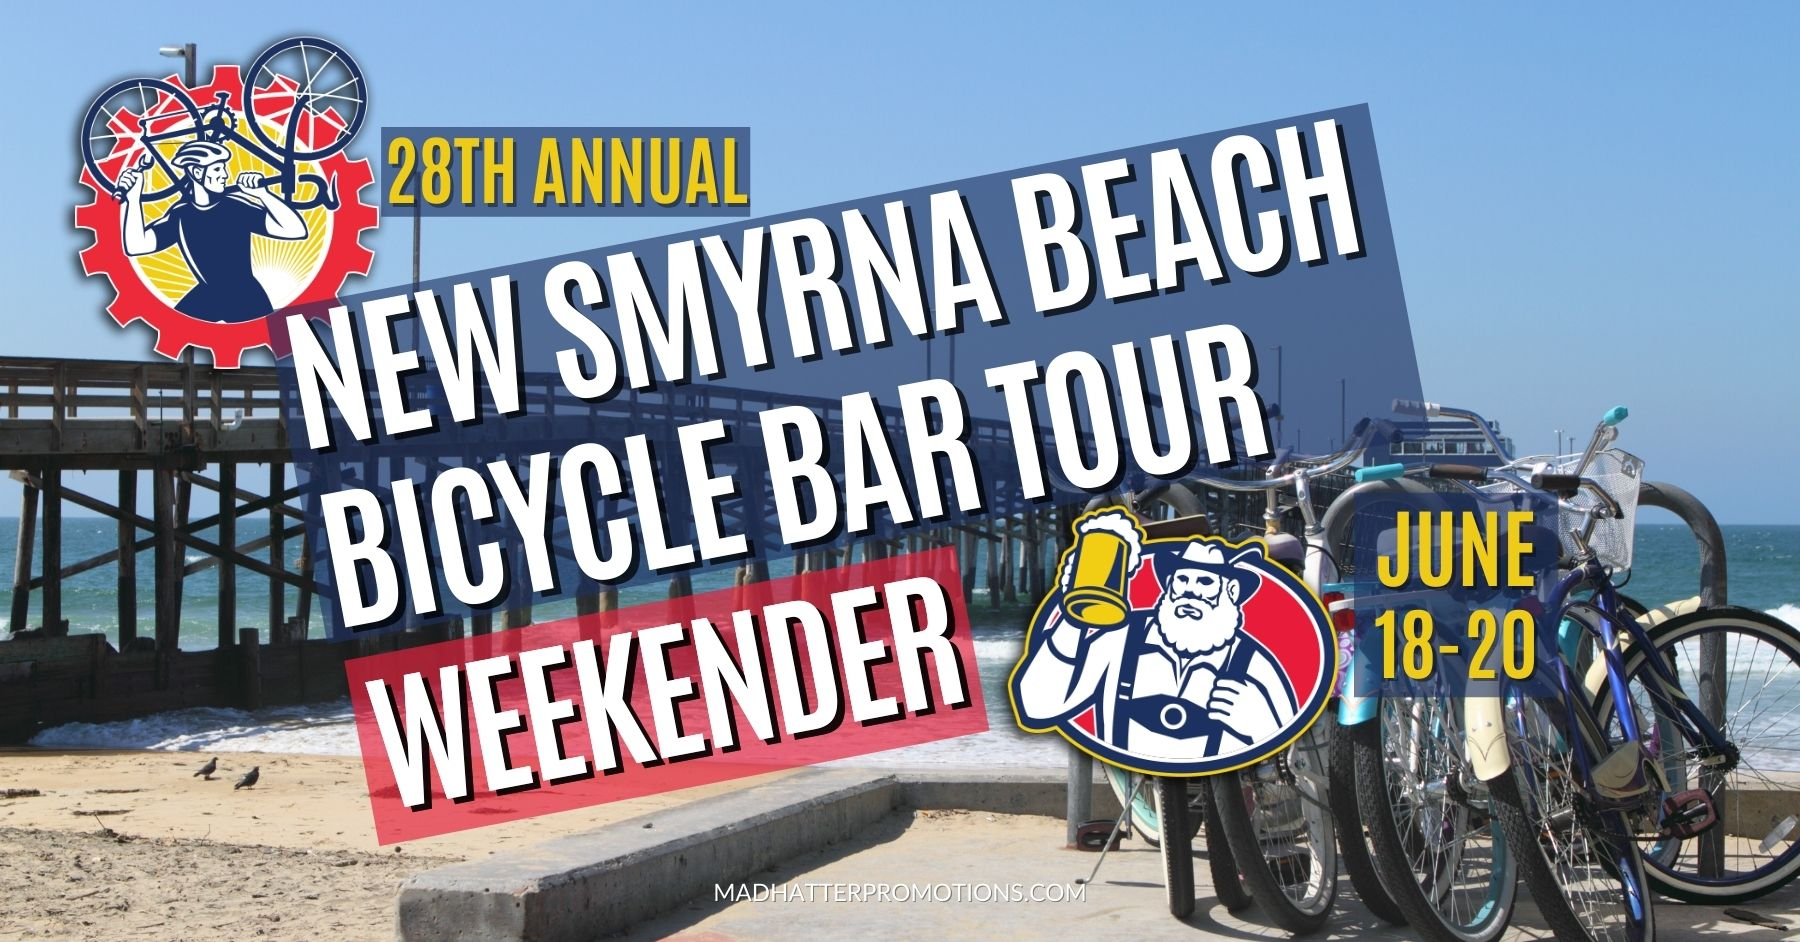 28th Annual New Smyrna Beach Bicycle Bar Tour Weekender 2021